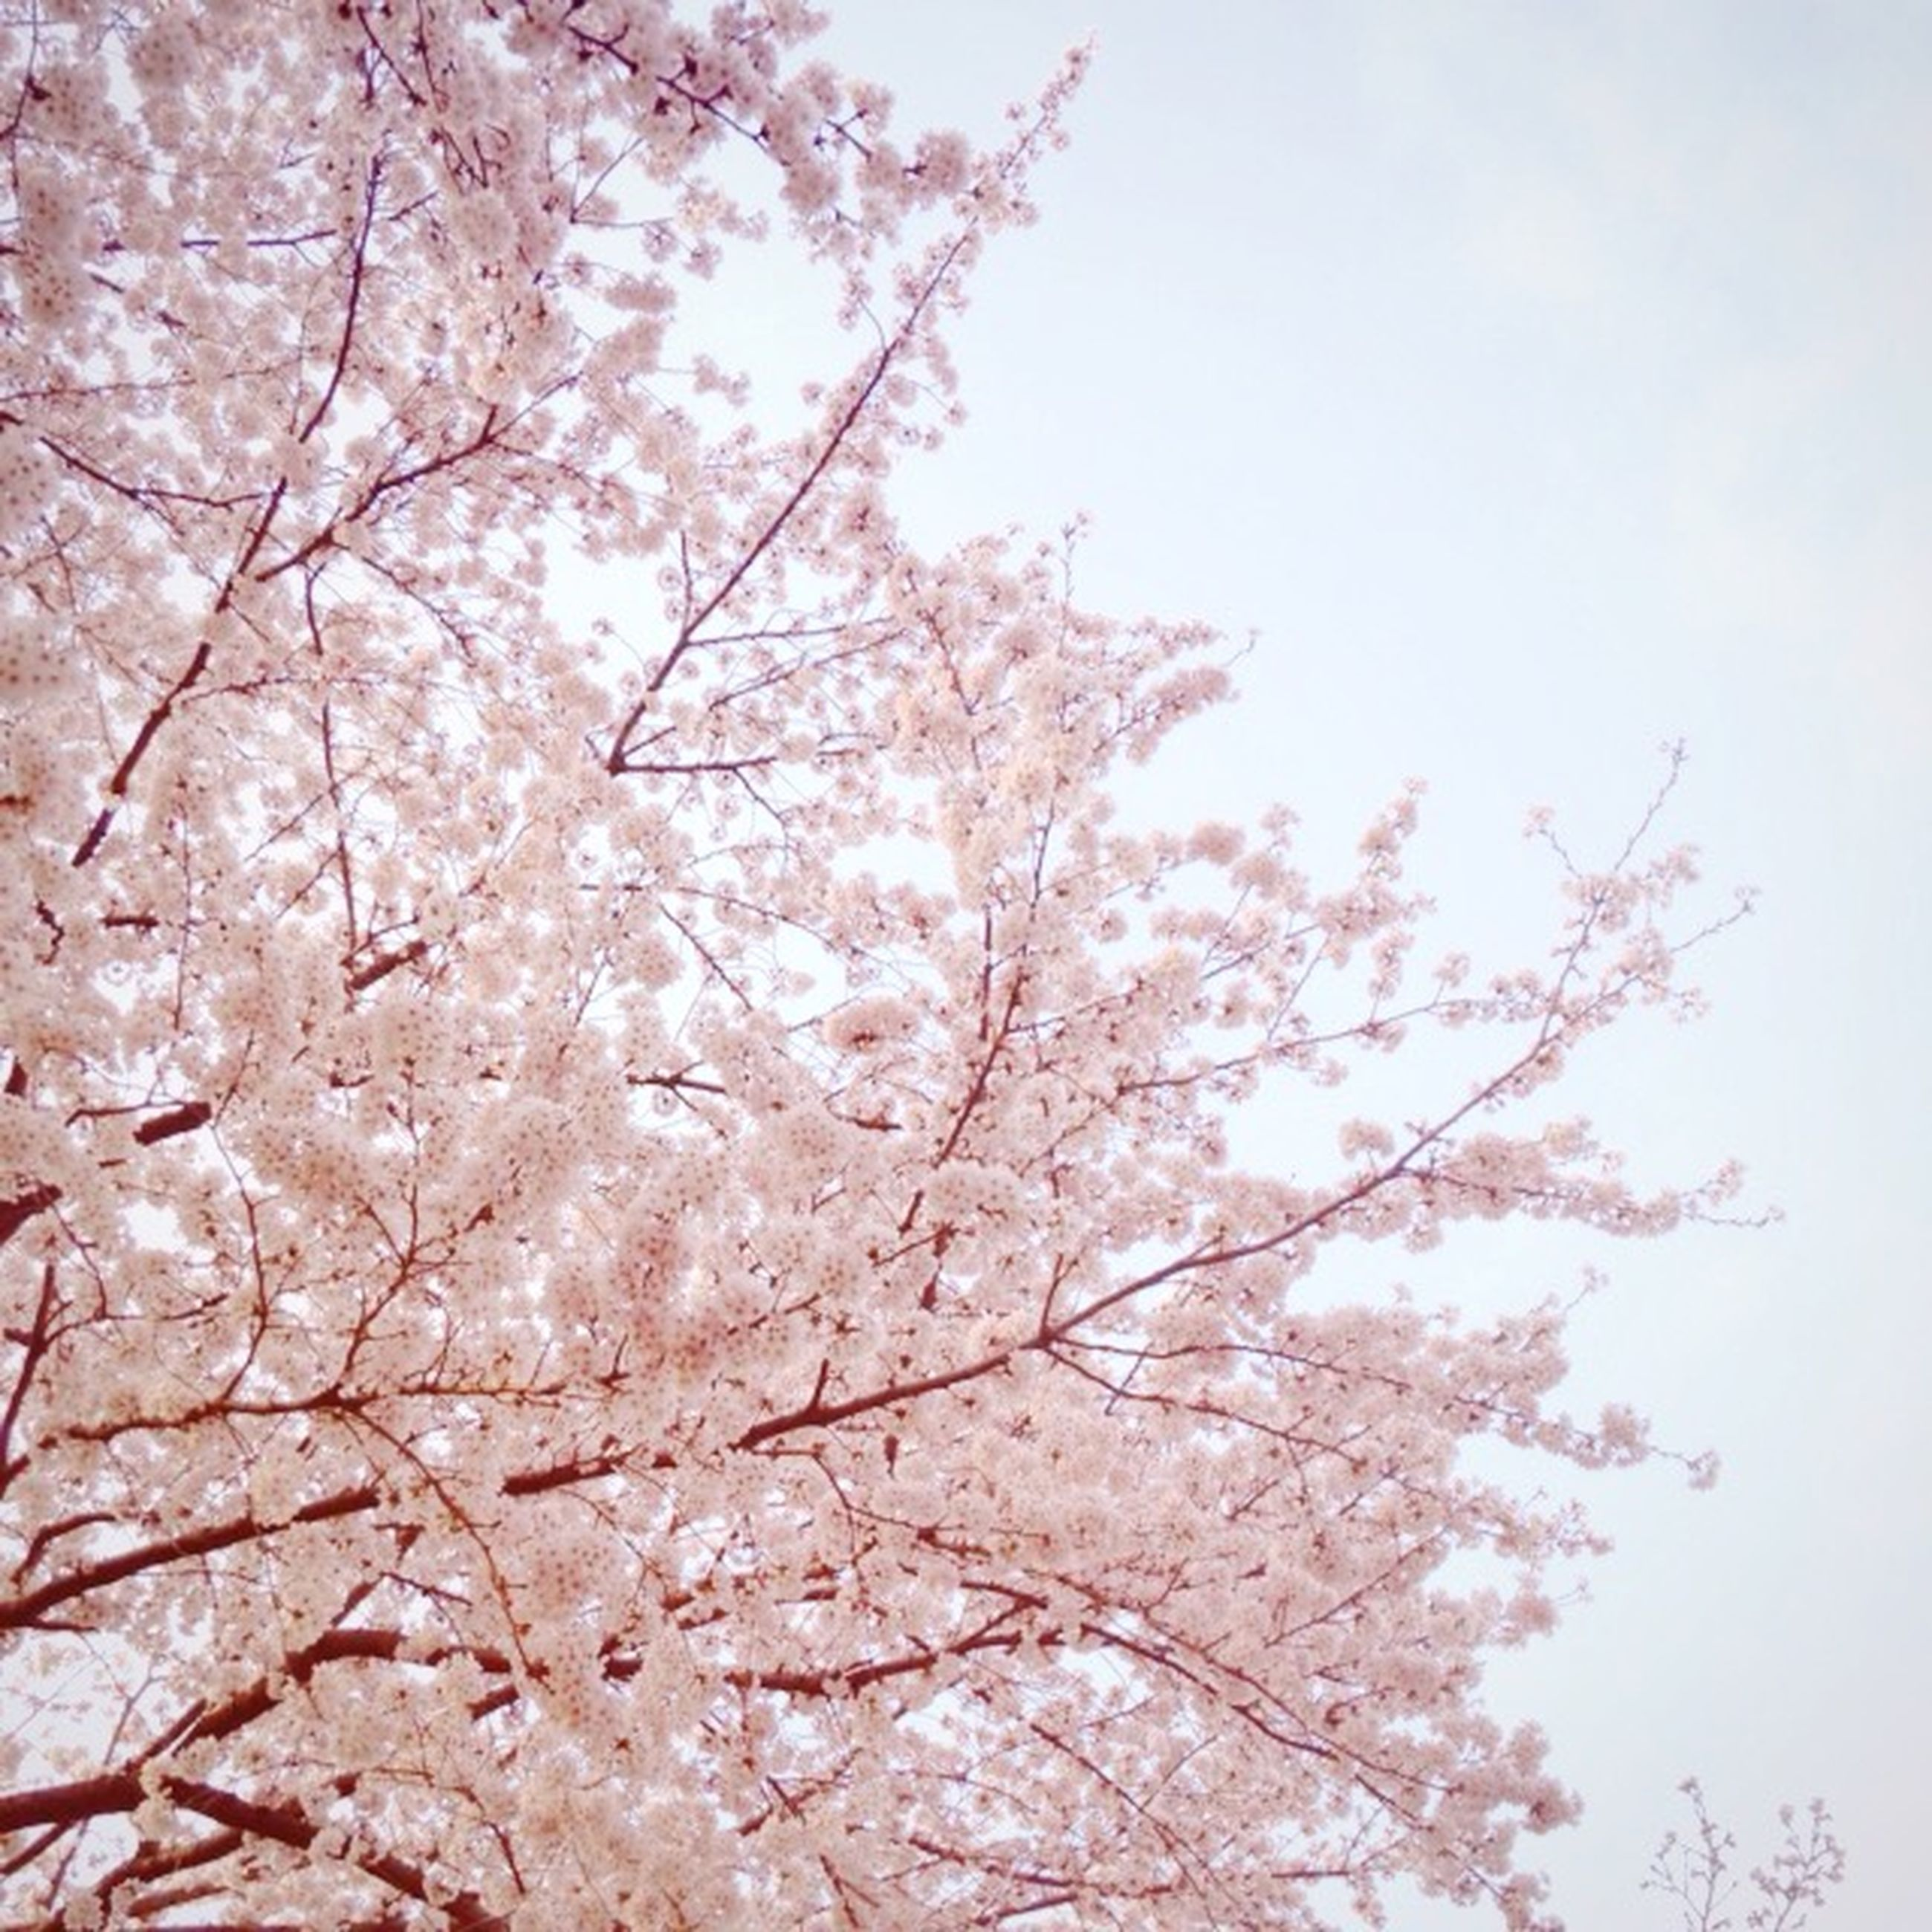 flower, tree, branch, freshness, low angle view, growth, beauty in nature, cherry blossom, blossom, fragility, nature, cherry tree, pink color, springtime, sky, in bloom, blooming, clear sky, day, fruit tree